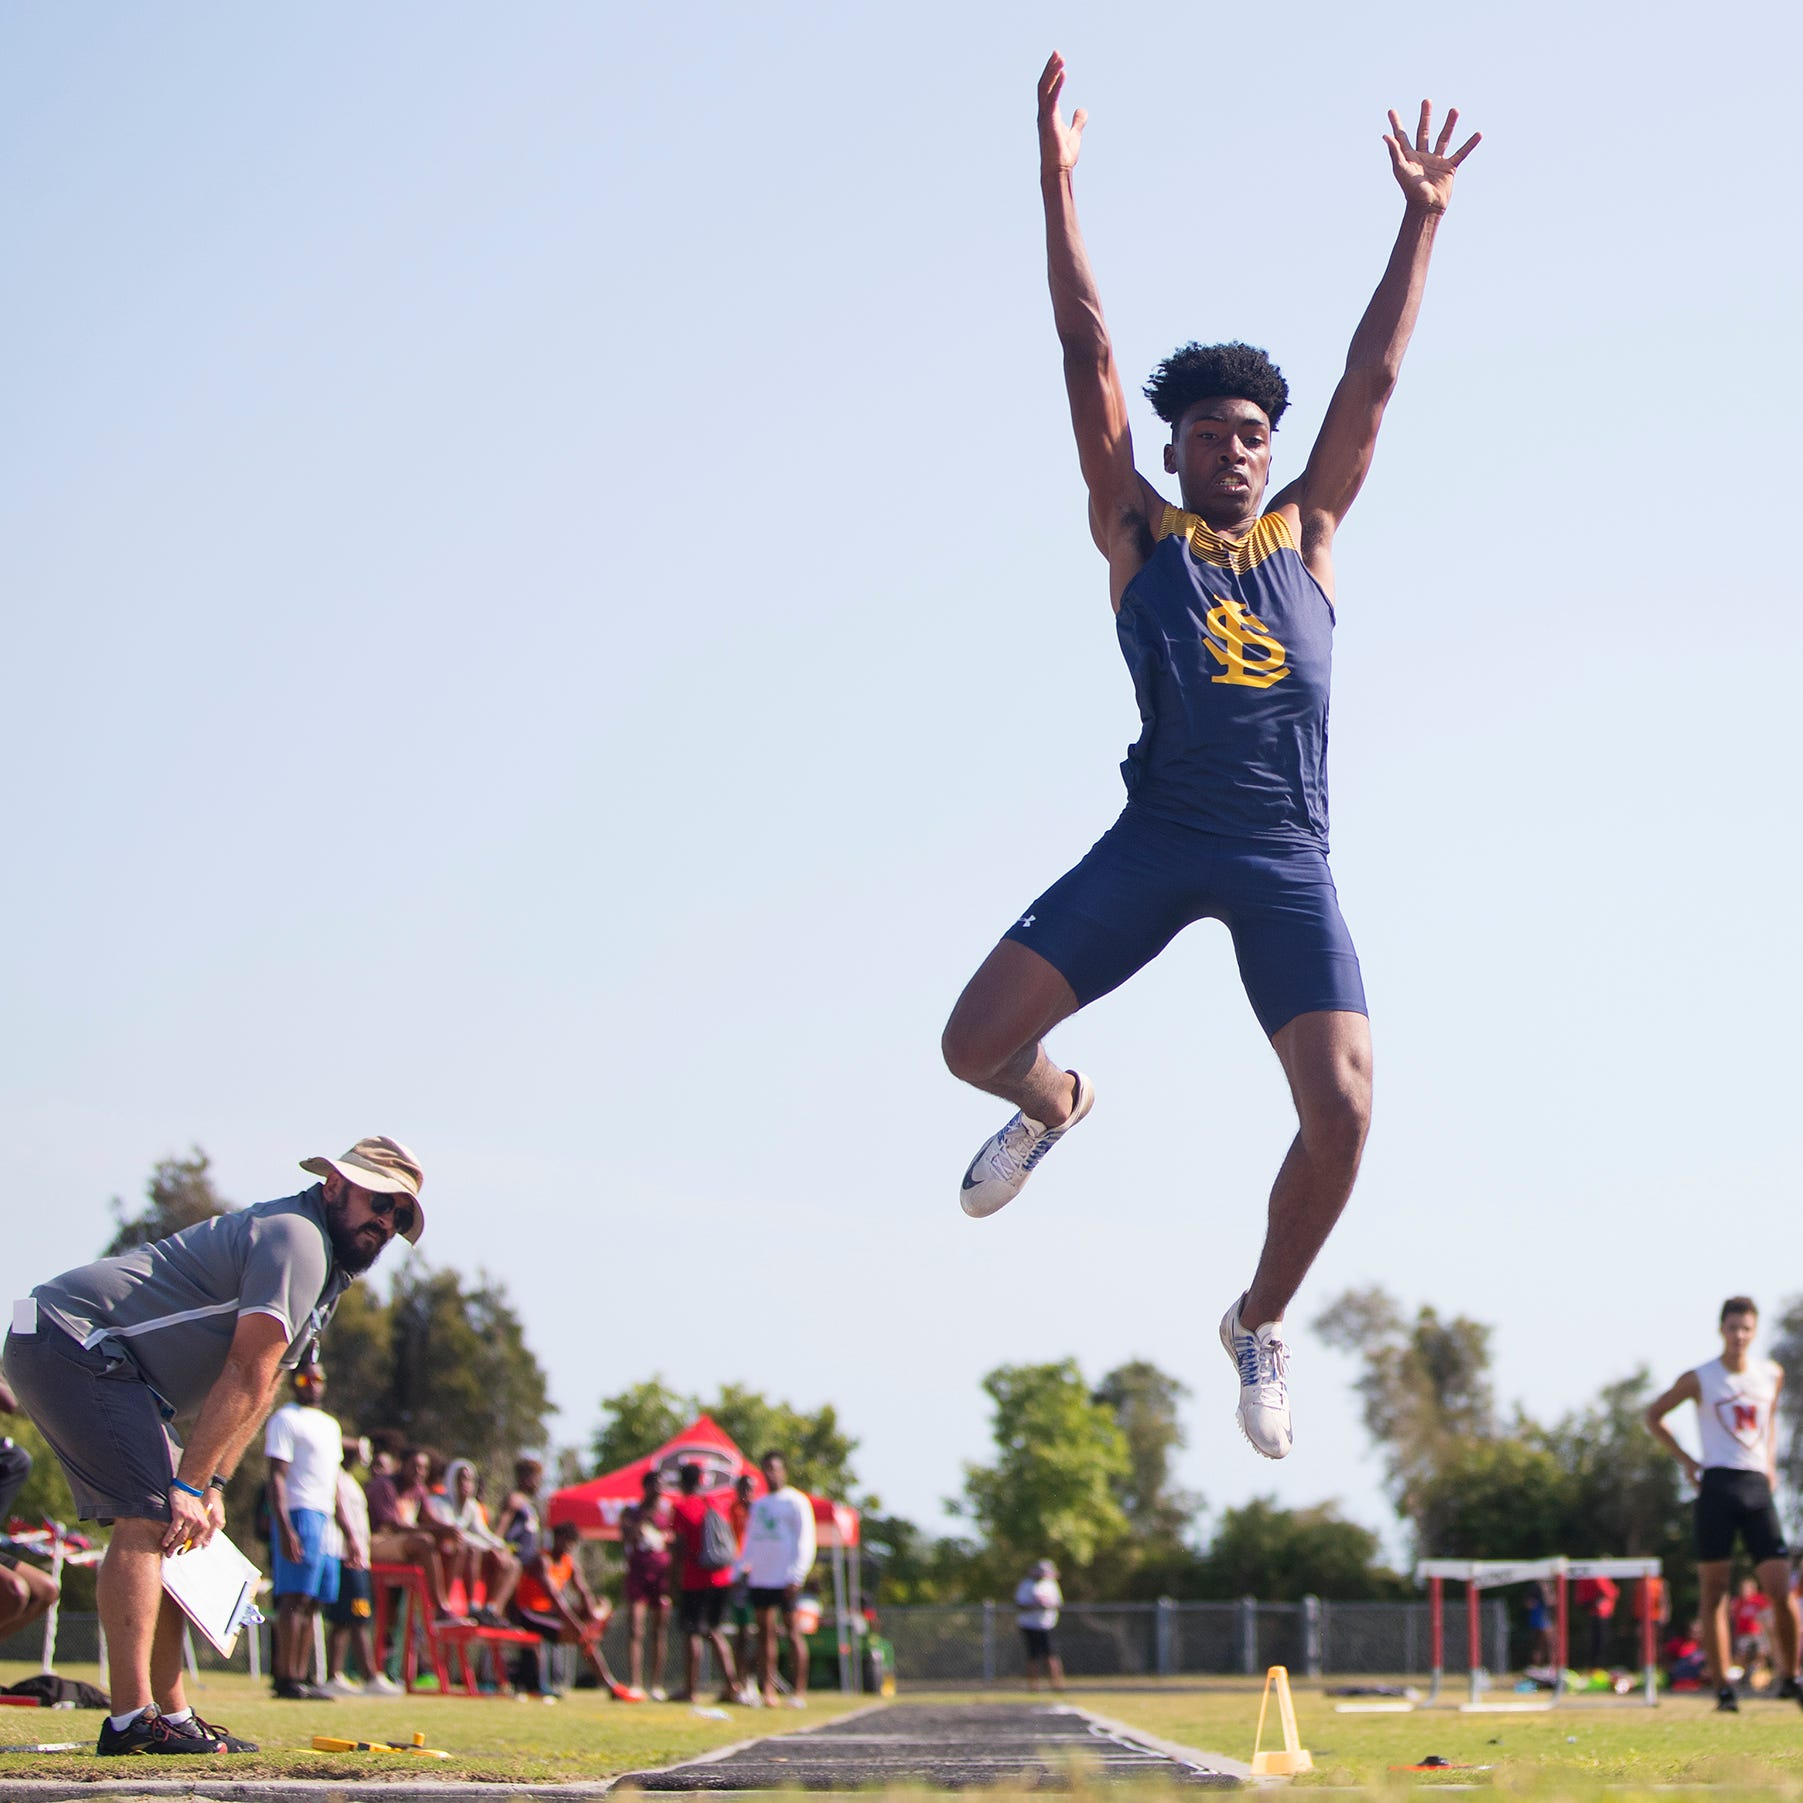 Lehigh's Jeremiah Davis breaks out as one of Florida's top jumpers entering state meet